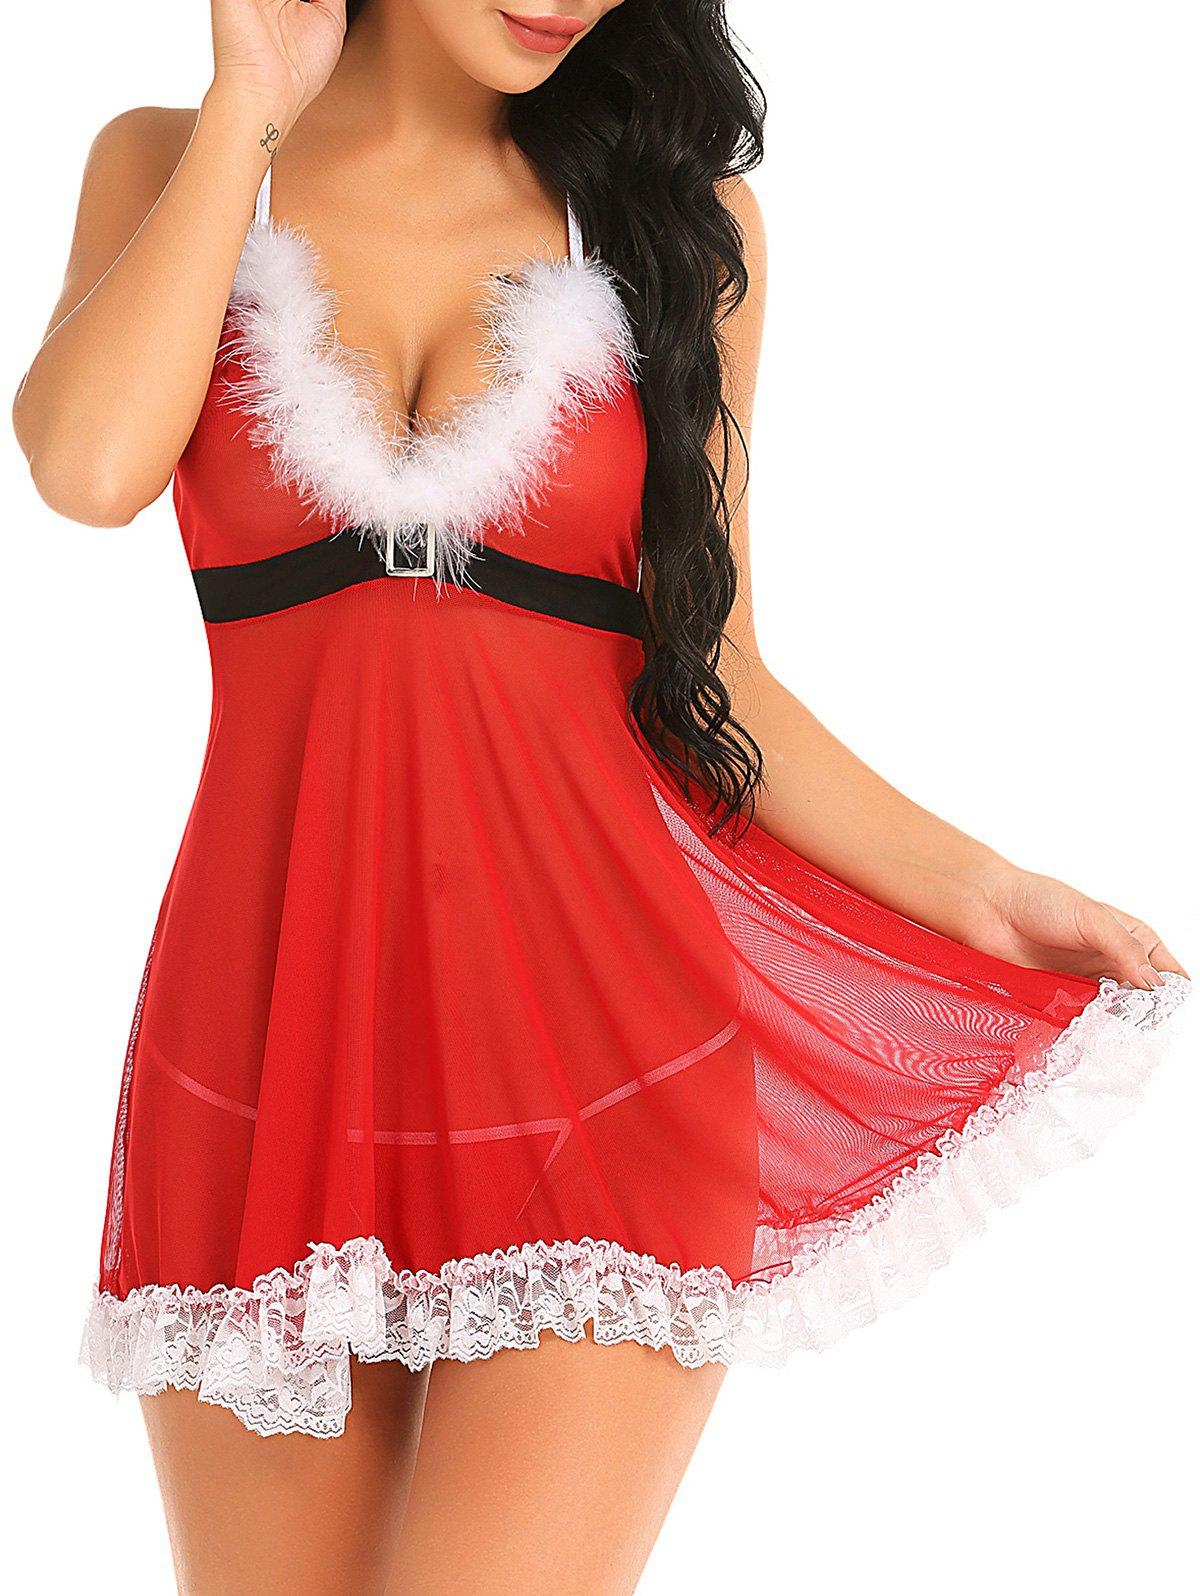 Lace Panel Mesh Fuzzy Babydoll Set - RED XL